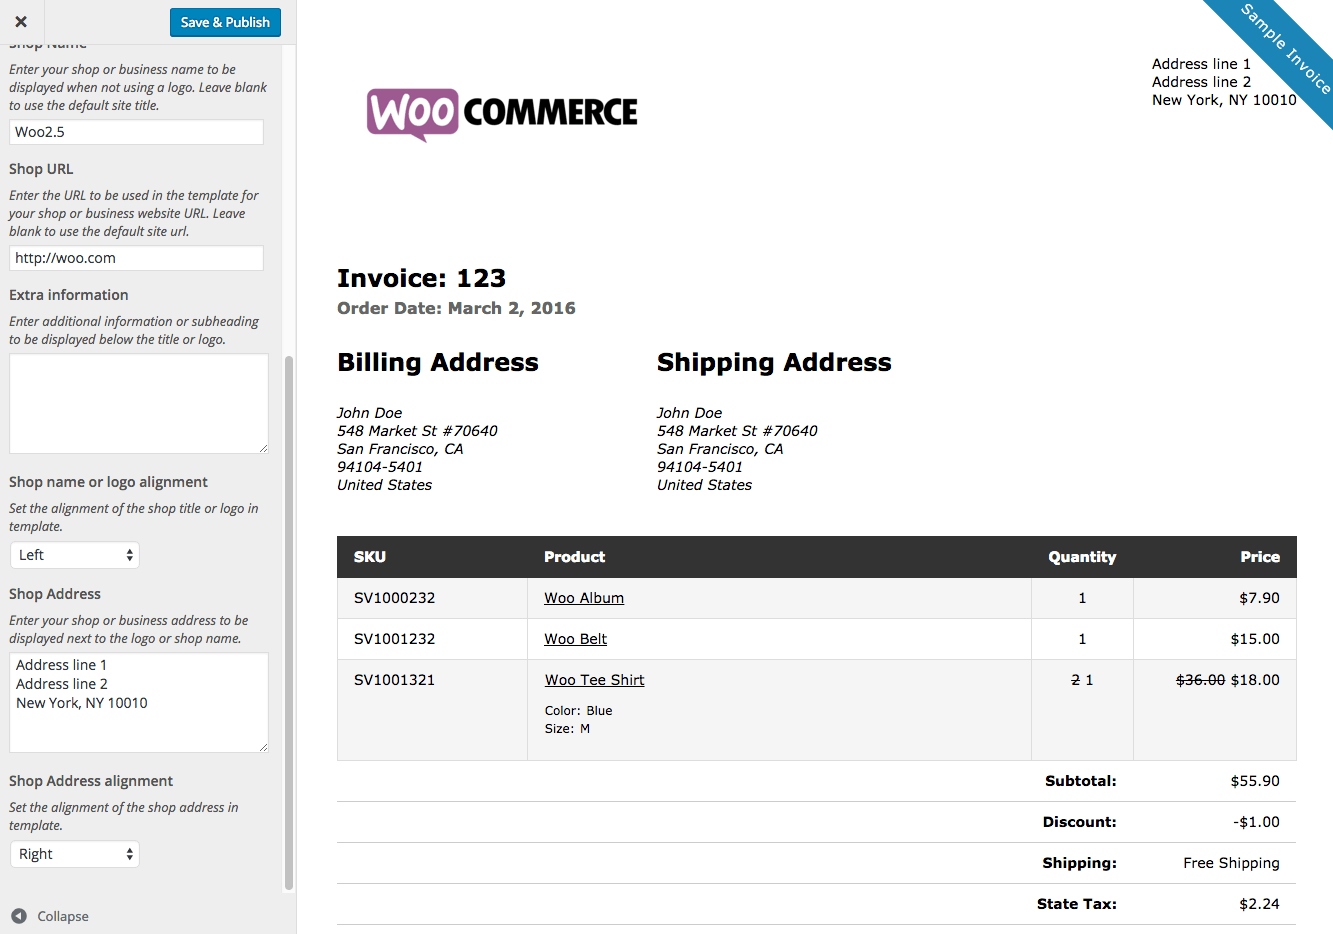 Centralasianshepherdus  Surprising Print Invoices Amp Packing Lists  Woocommerce With Heavenly Woocommerce Print Invoices  Packing Lists Customizer With Breathtaking Invoice Dates Also What Is Invoice System In Addition Zoho Invoic And Templates Of Invoices As Well As Invoice Cars Additionally Carbonless Invoice Books From Woocommercecom With Centralasianshepherdus  Heavenly Print Invoices Amp Packing Lists  Woocommerce With Breathtaking Woocommerce Print Invoices  Packing Lists Customizer And Surprising Invoice Dates Also What Is Invoice System In Addition Zoho Invoic From Woocommercecom